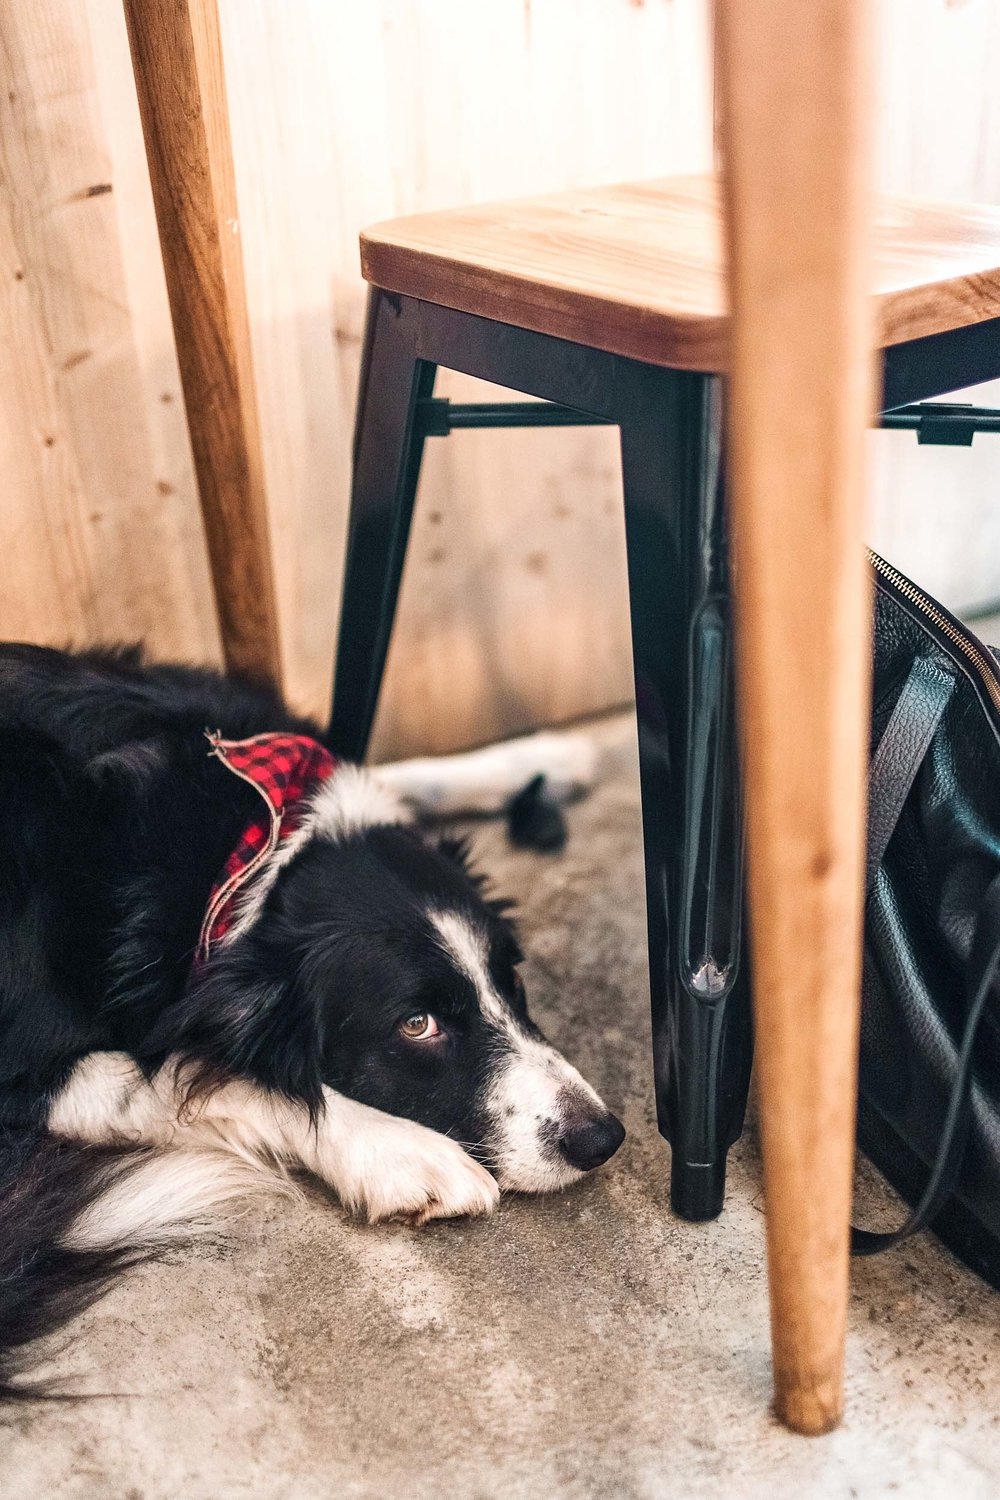 Hello, Kristof in Lisbon is a dog friendly specialty coffee shop!